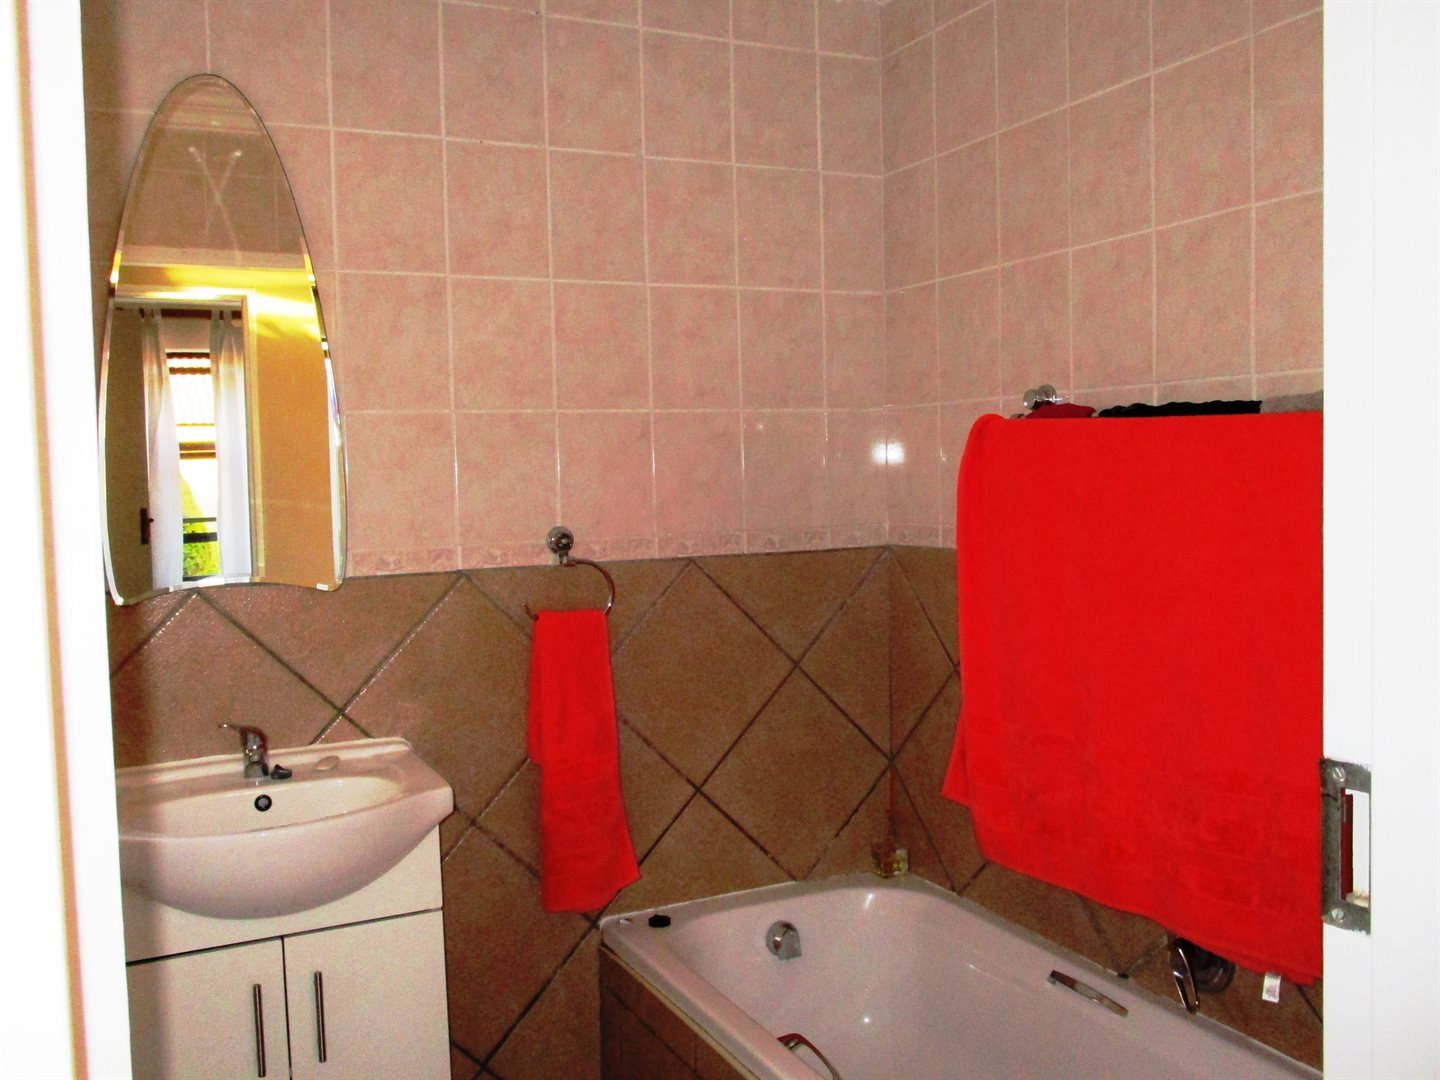 Thatchfield Cresent property for sale. Ref No: 13568232. Picture no 8